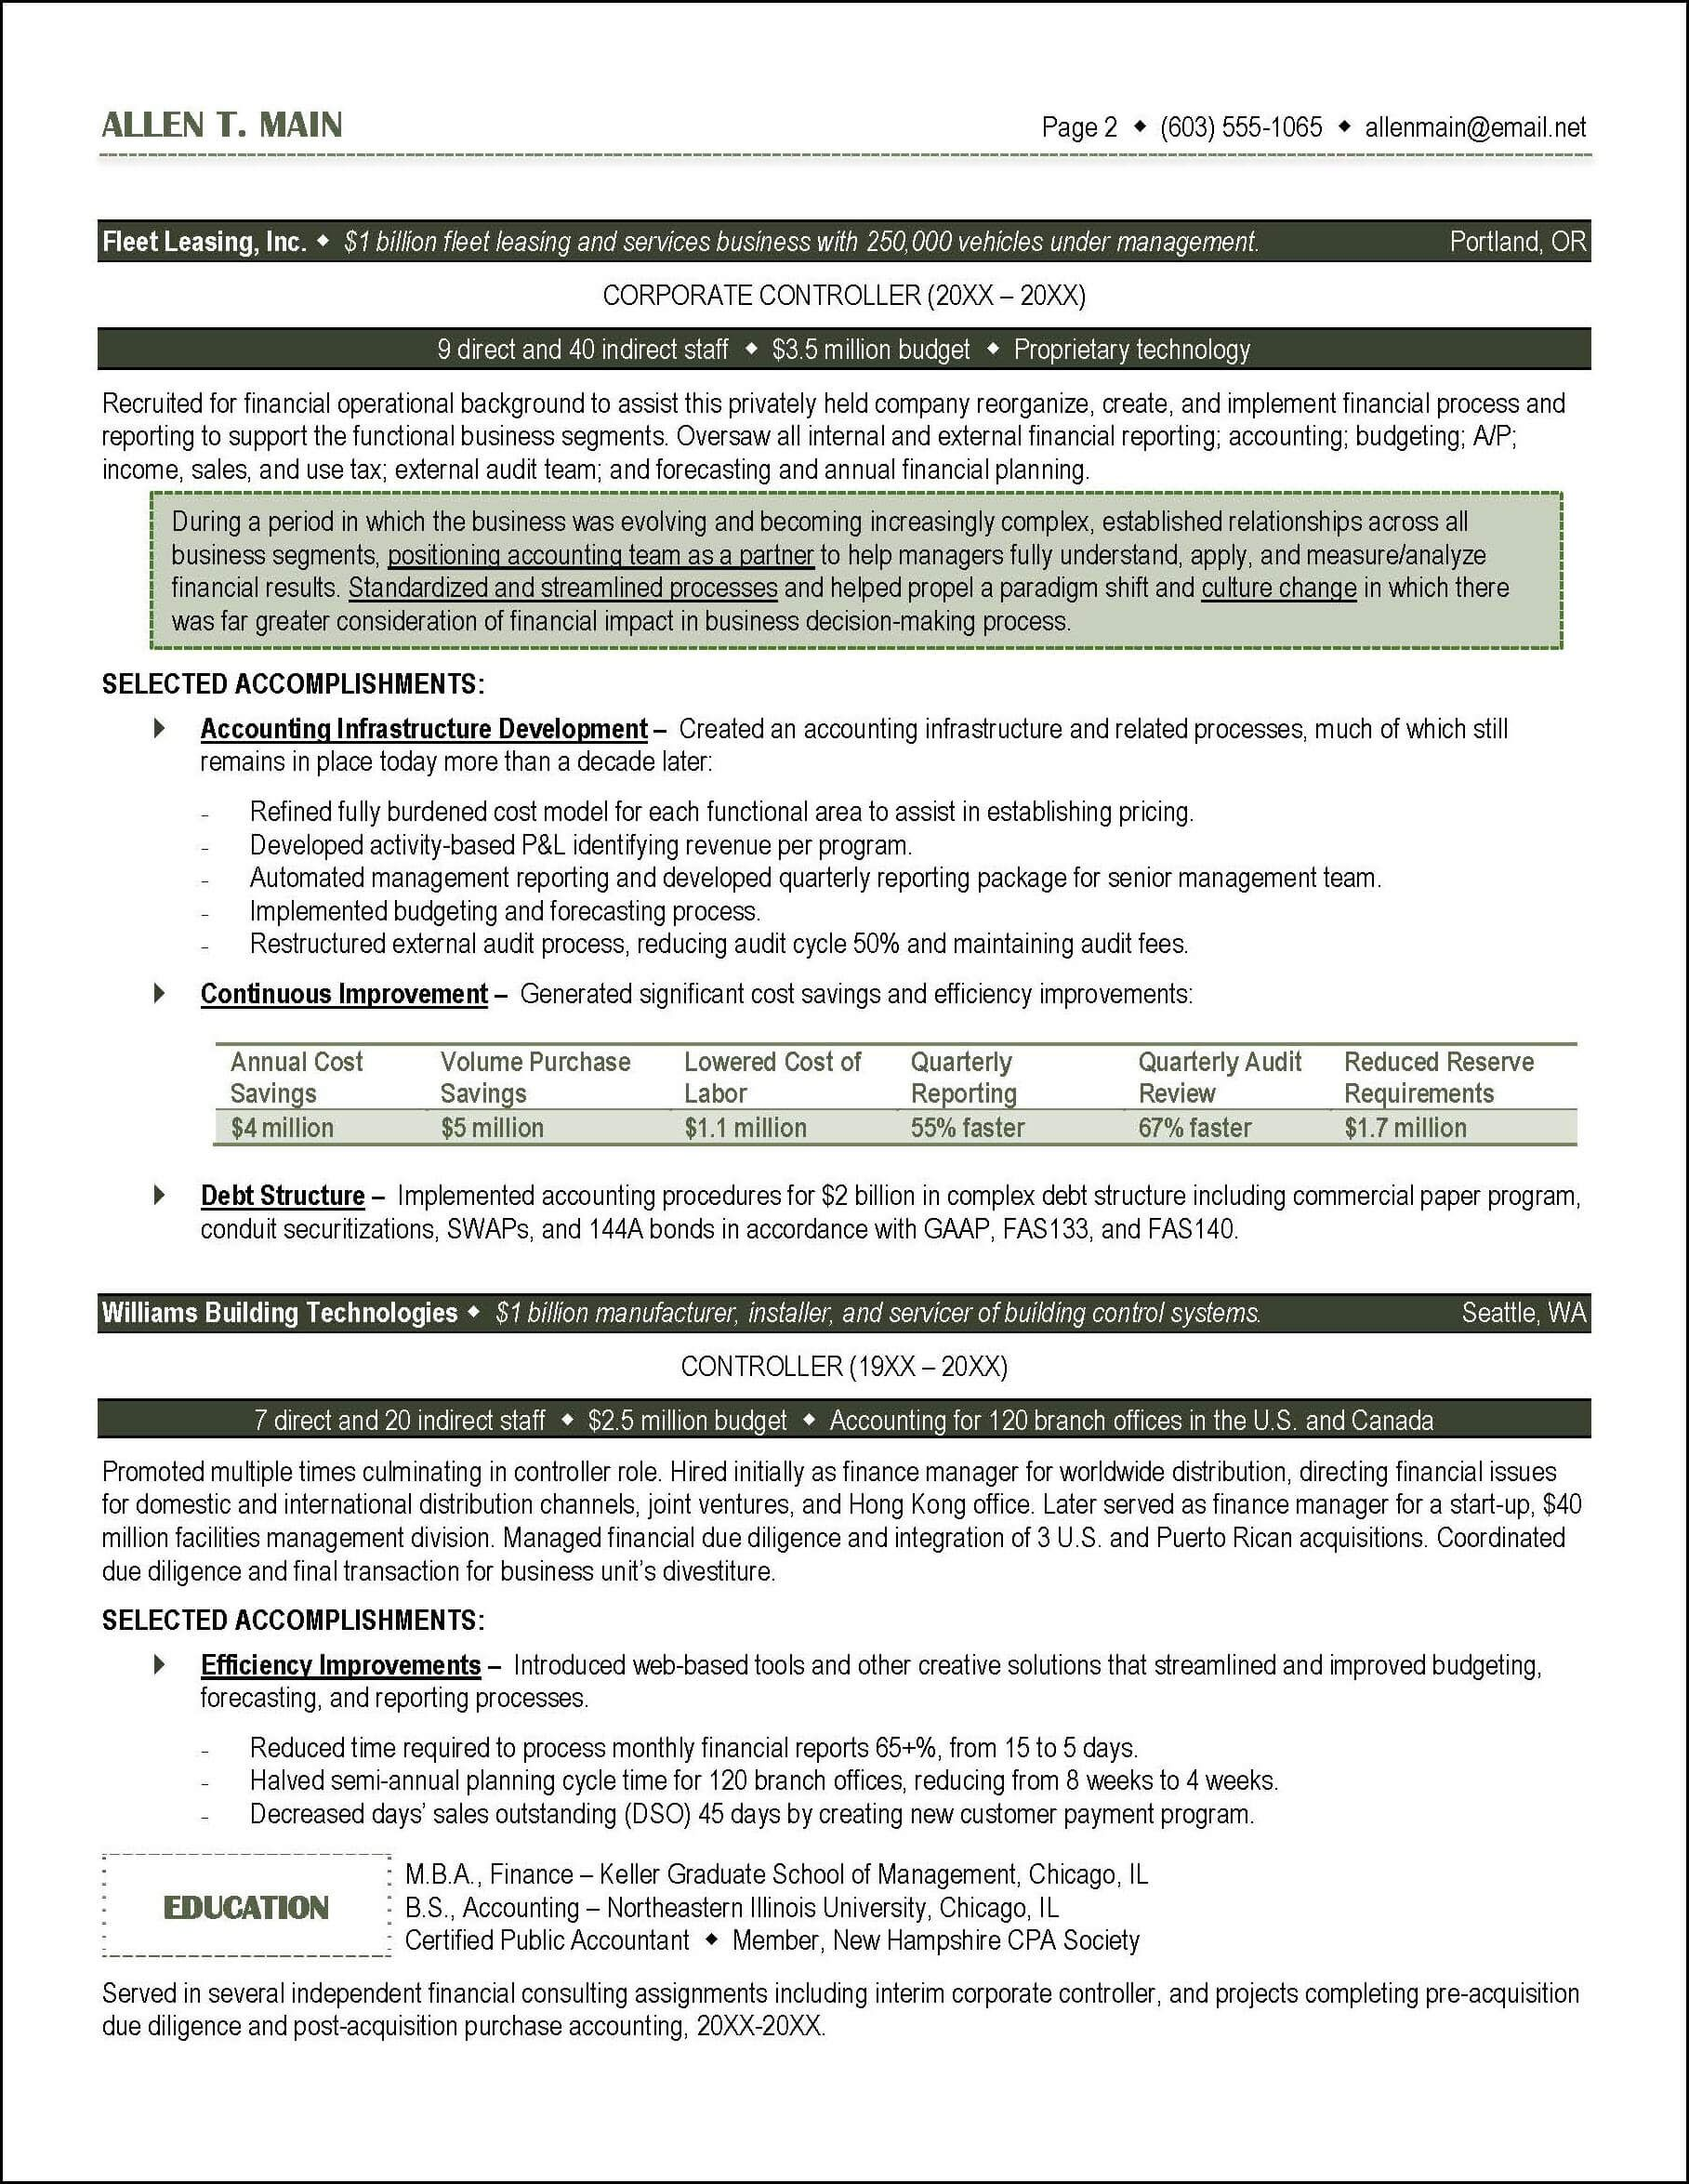 accounting resume example distinctive documents formatting ideas mistakes faq about budget accountant sample resume - Cpa Resume Sample